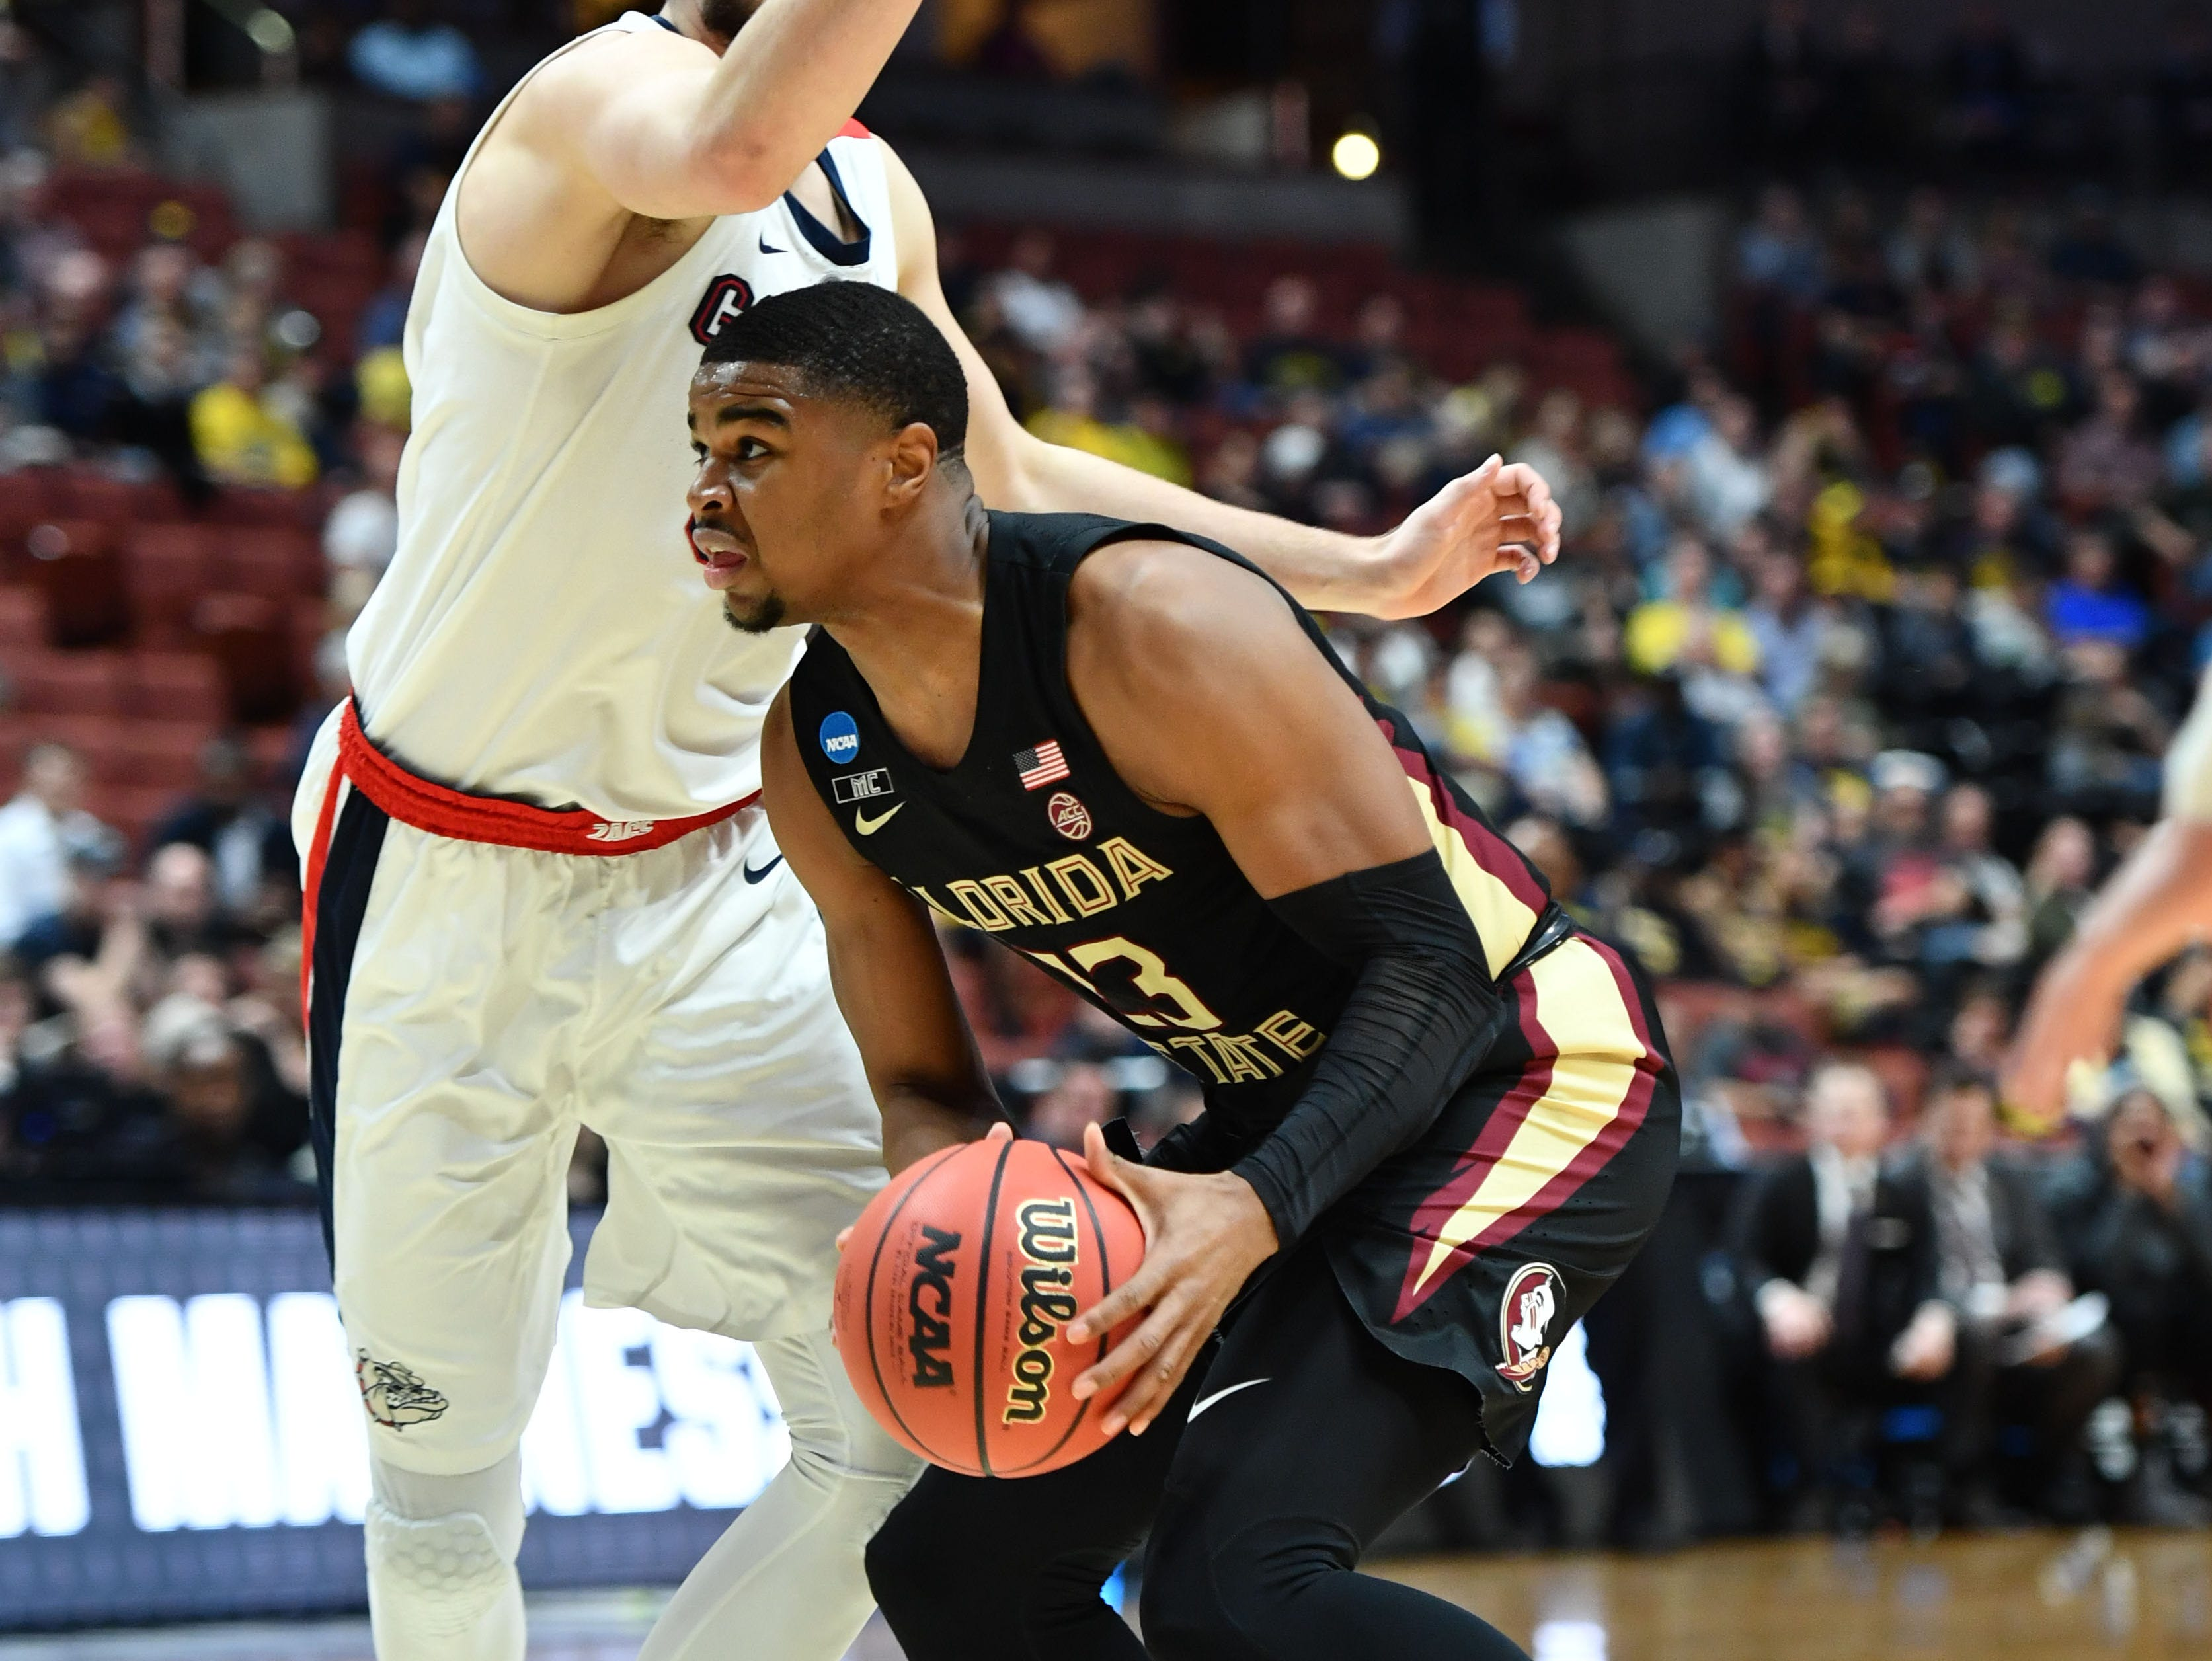 March 28, 2019; Anaheim, CA, USA; Florida State Seminoles guard M.J. Walker (23) moves the ball against Gonzaga Bulldogs forward Killian Tillie (33) during the first half in the semifinals of the west regional of the 2019 NCAA Tournament at Honda Center. Mandatory Credit: Robert Hanashiro-USA TODAY Sports